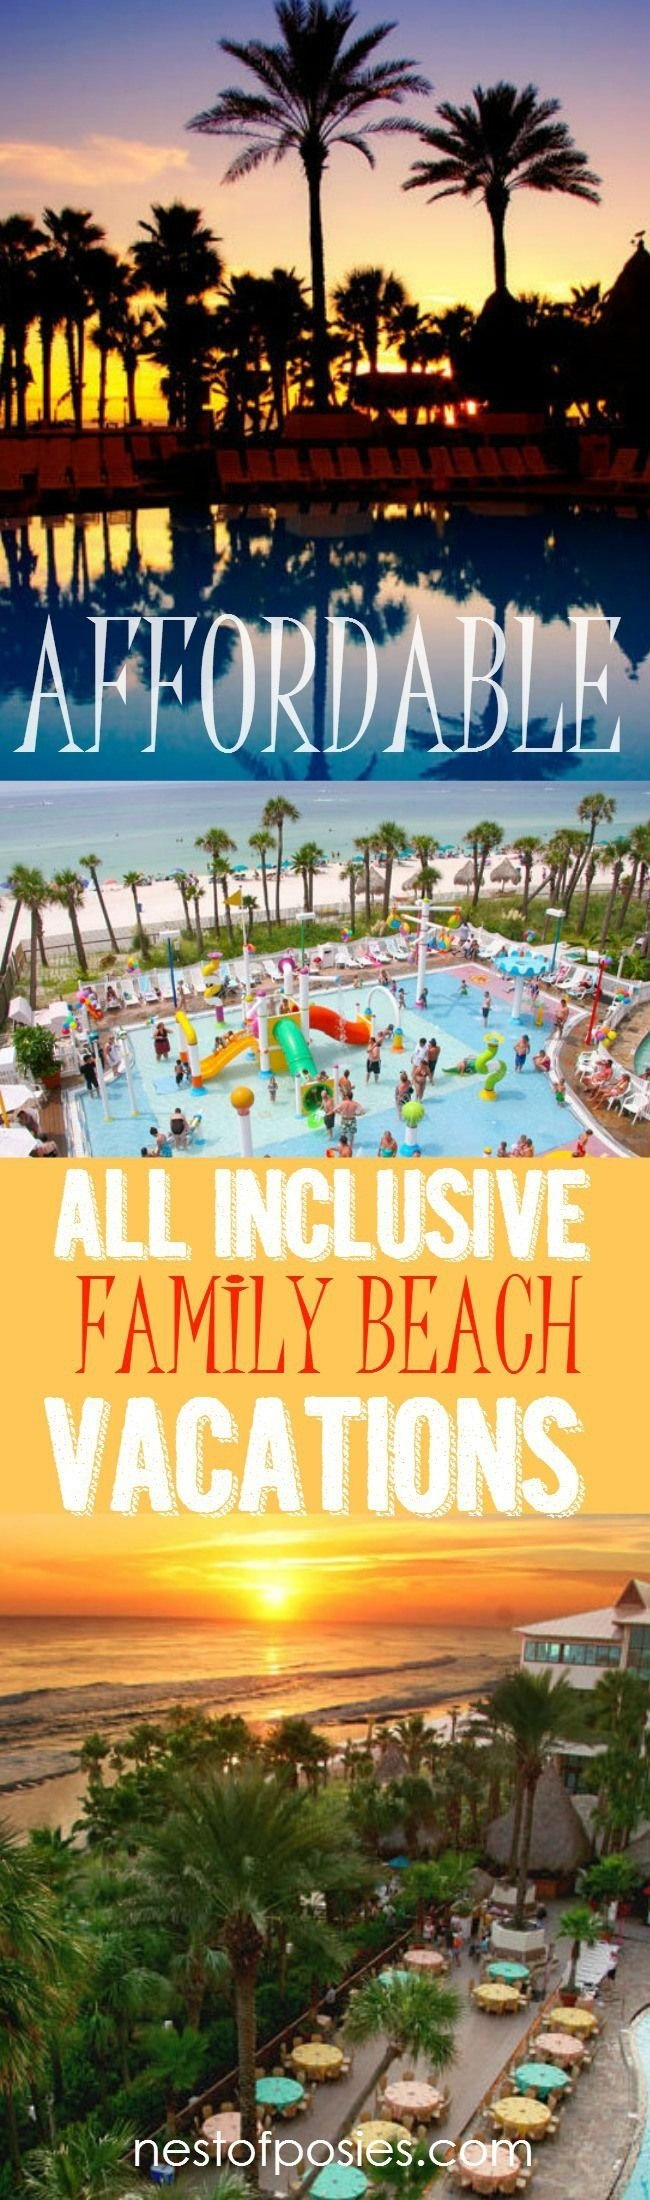 10 Attractive Spring Break Ideas For Couples 22 best all inclusive resorts images on pinterest dream vacations 2020